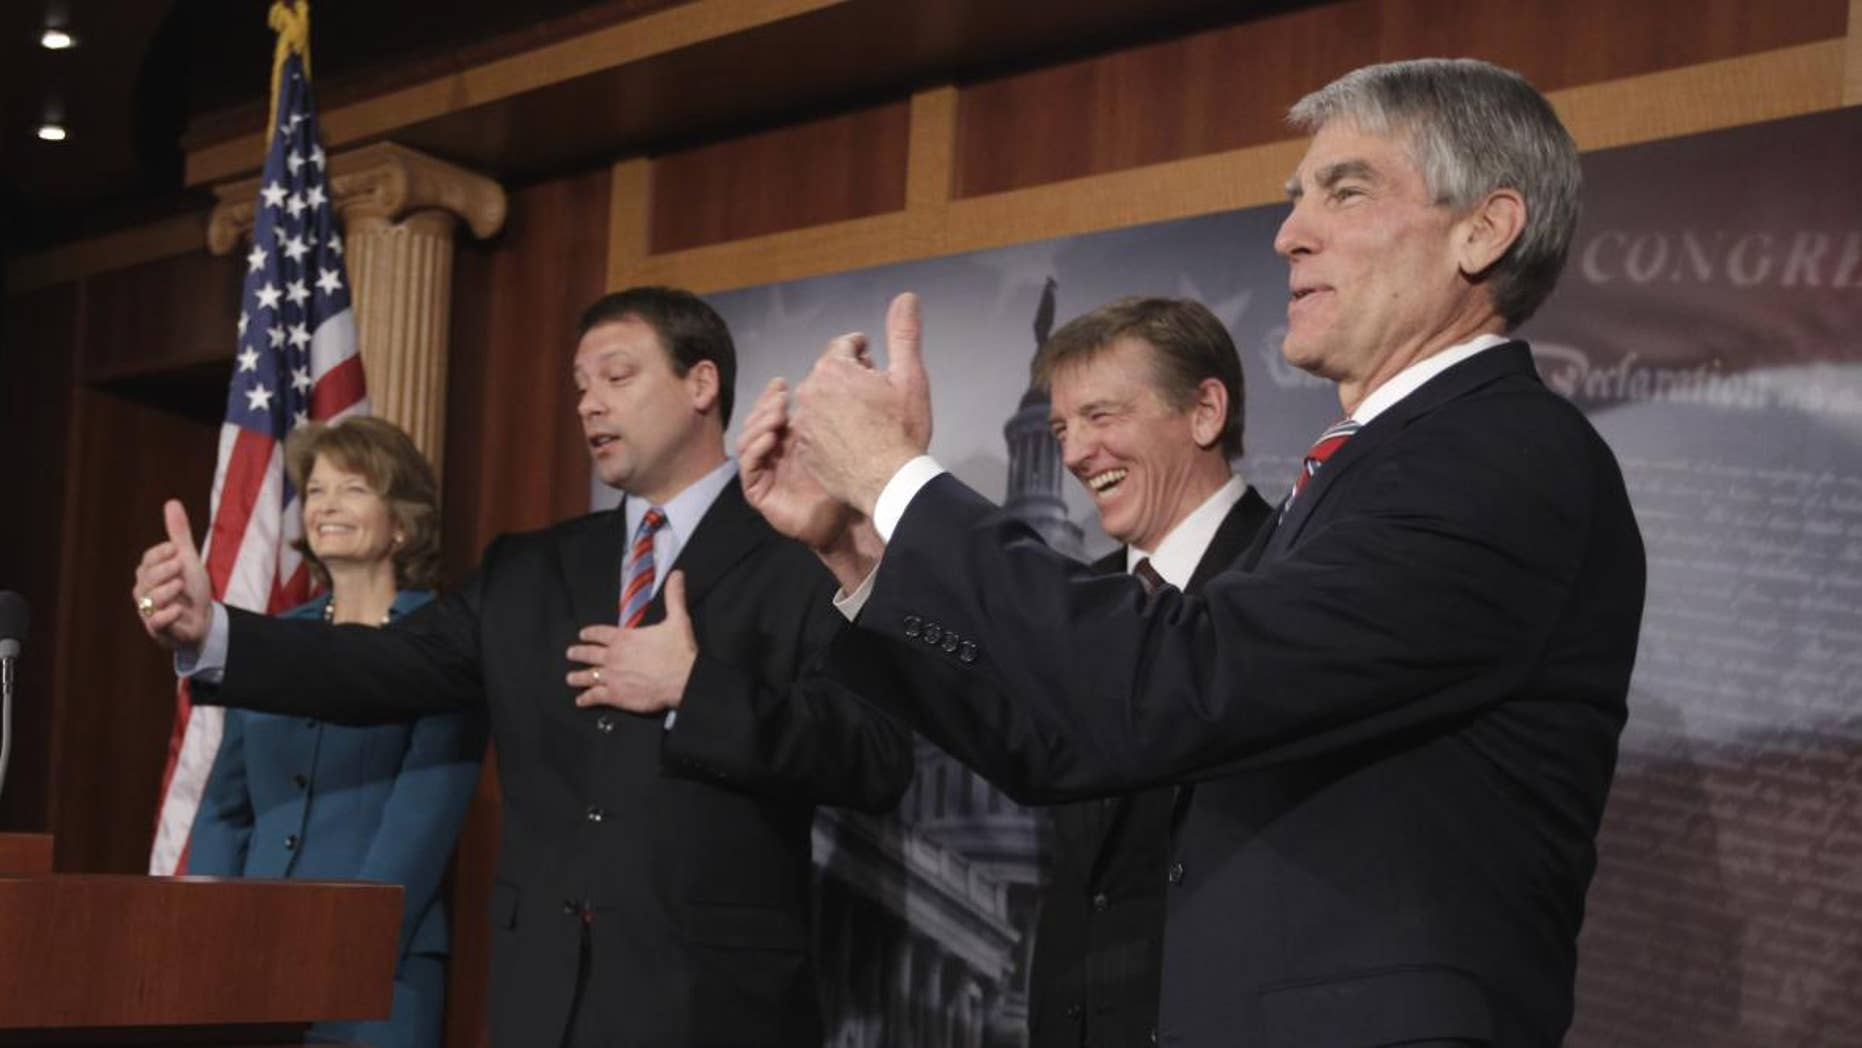 From left, Sen. Lisa Murkowski, R-Alaska, Rep. Heath Shuler, D-N.C., Rep. Paul Gosar, R-Ariz, and Sen. Mark Udall, D-Colo.,take part in a news conference on Capitol Hill in Washington, Tuesday, Jan. 25, 2011, to discuss Democrats and Republicans sitting together during President Barack Obama's State of the Union speech. (AP Photo/Charles Dharapak)